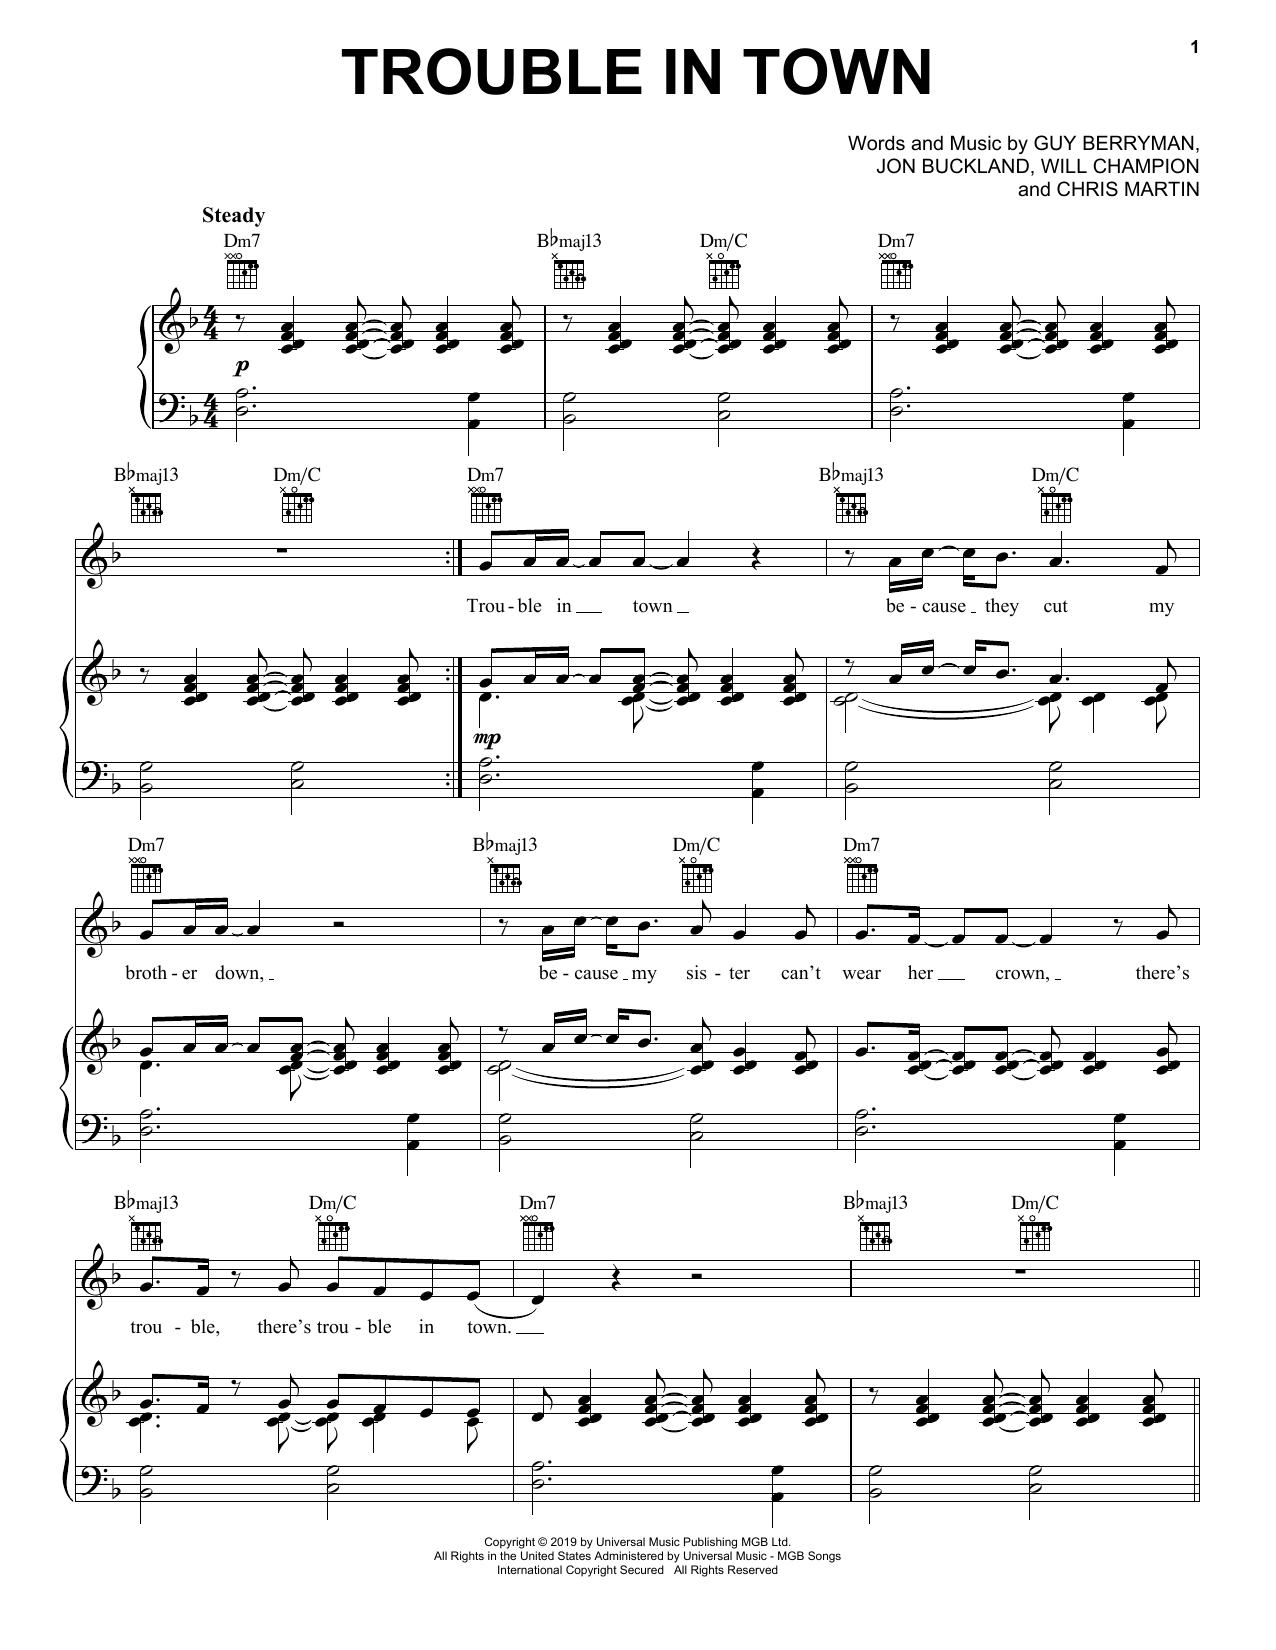 Coldplay Trouble In Town Sheet Music Notes Chords Score Download Printable Pdf In 2020 Sheet Music Notes Sheet Music Music Notes